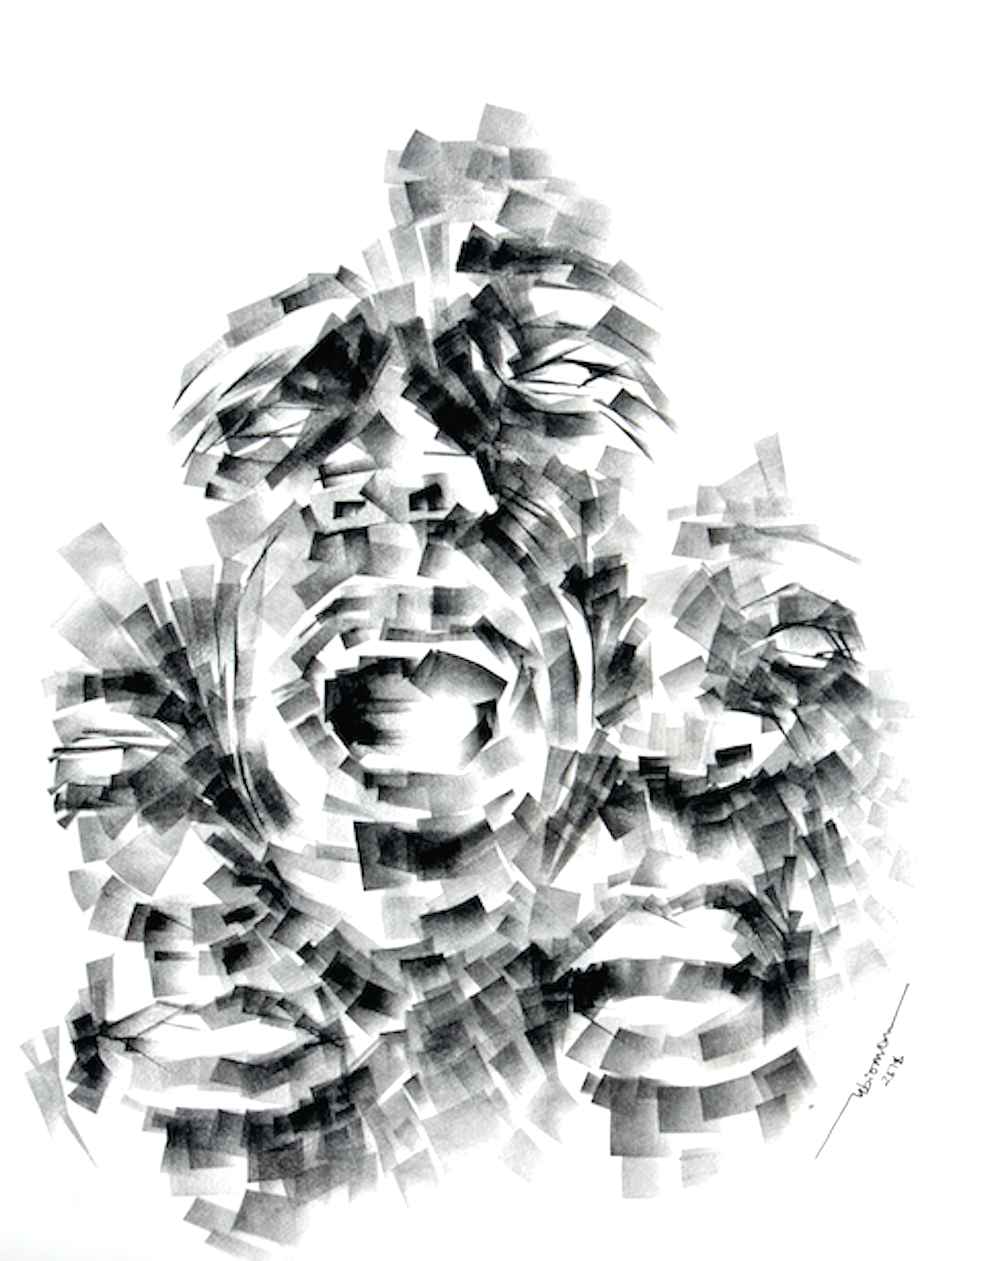 Faces IV by Mr Ubiomo Ogheneroh - Masterpiece Online